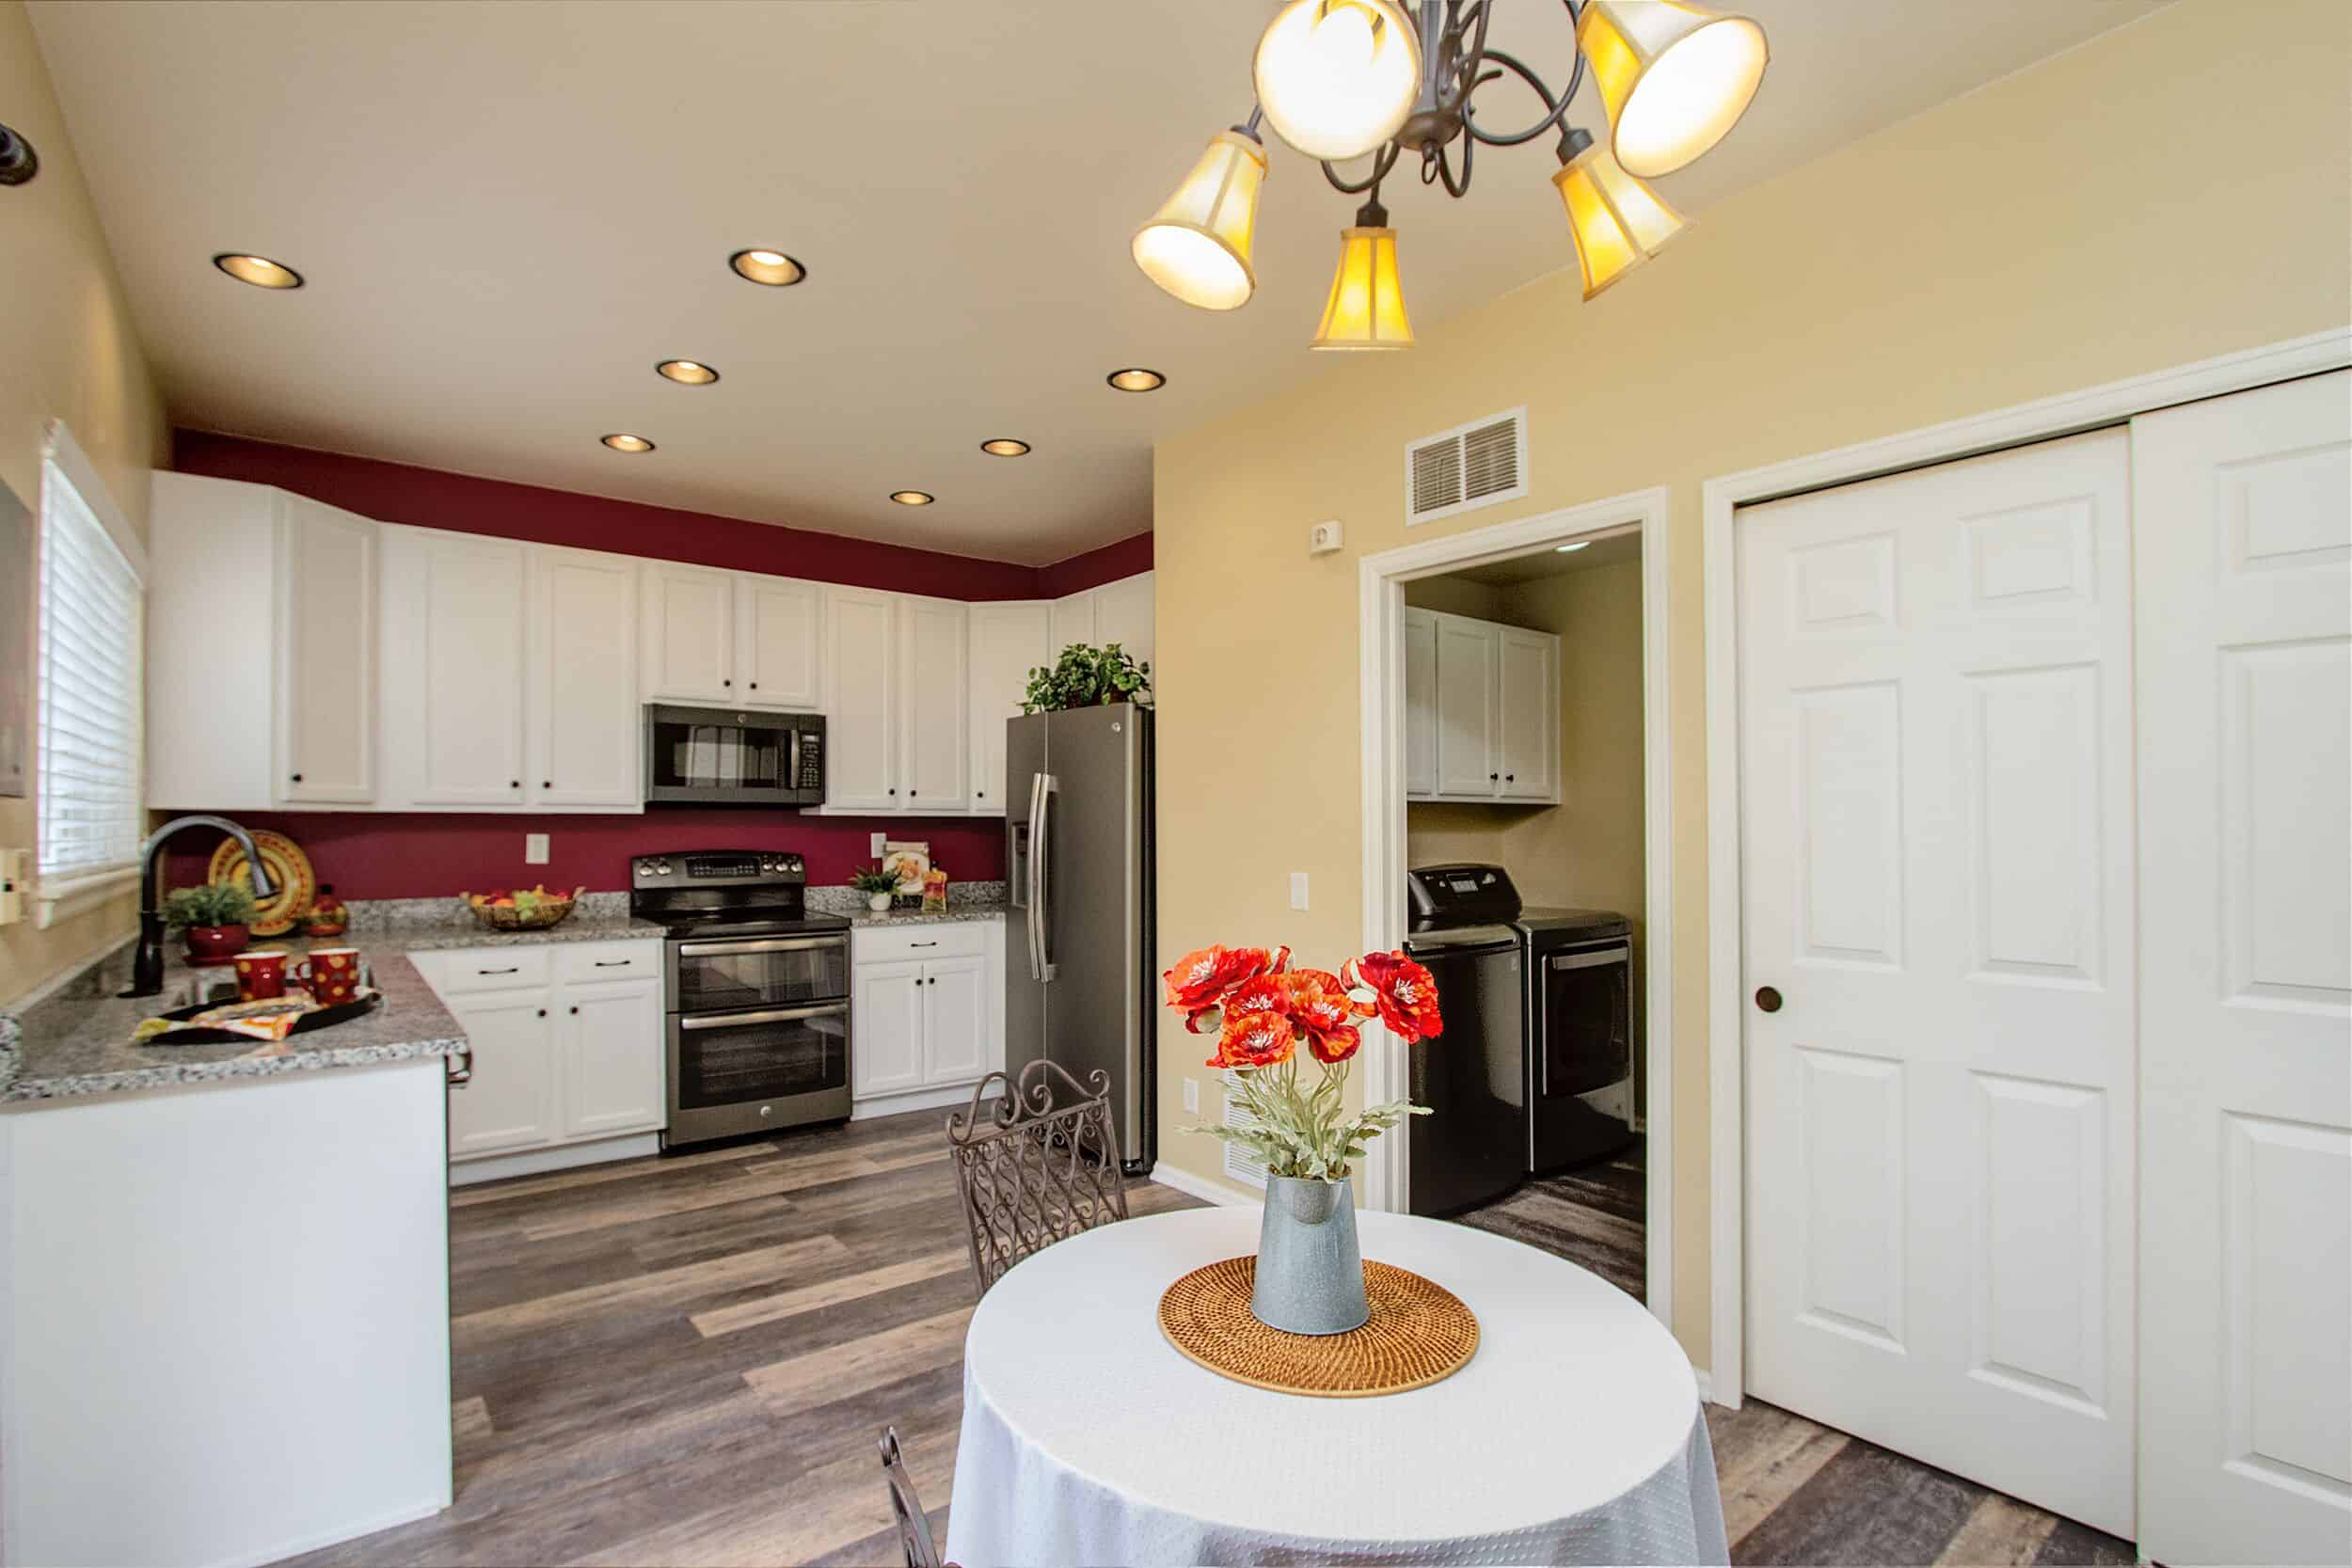 Kitchen into Laundry Room